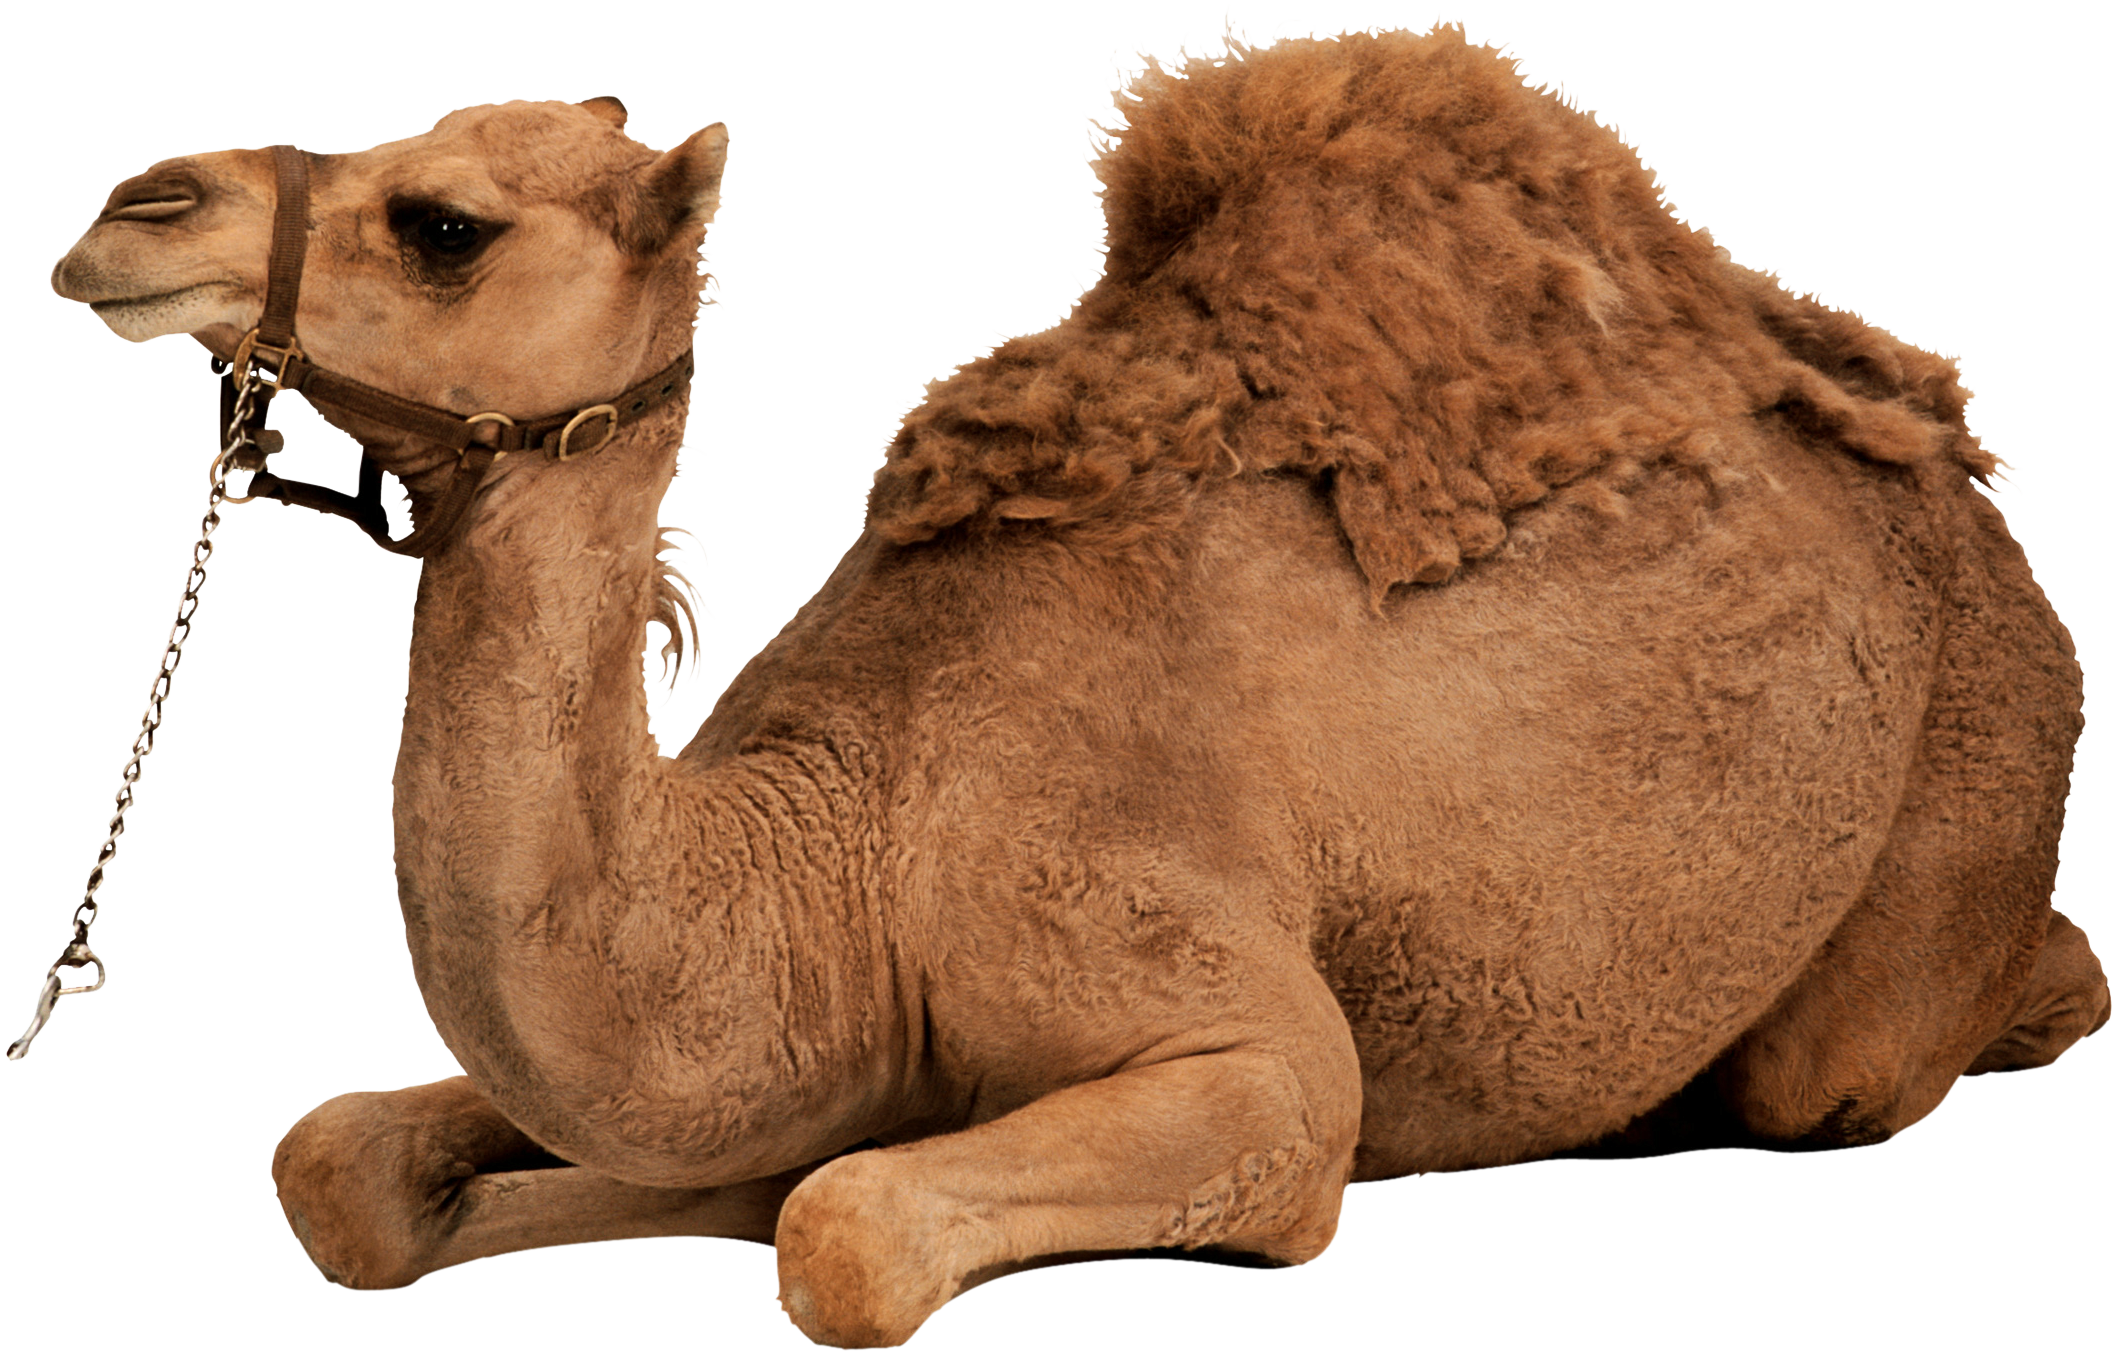 Clipart Png Download Camel image #37110